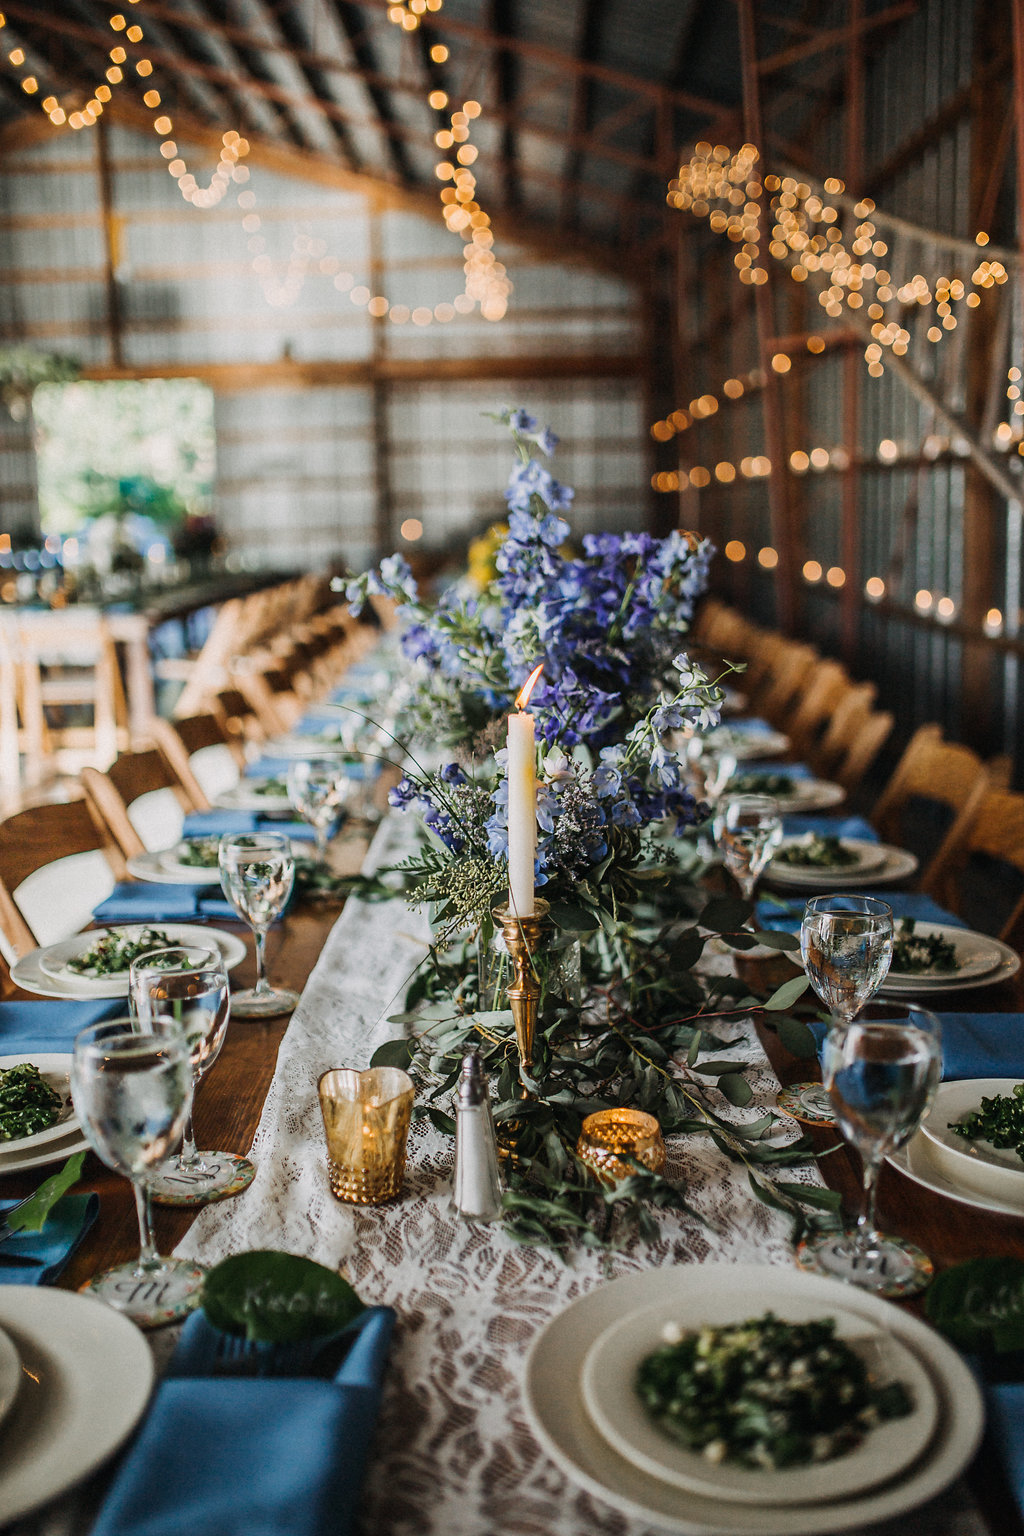 Monica_Relyea_Events_Dawn_Honsky_Photography_Nostrano_vineyard_barn_tables1